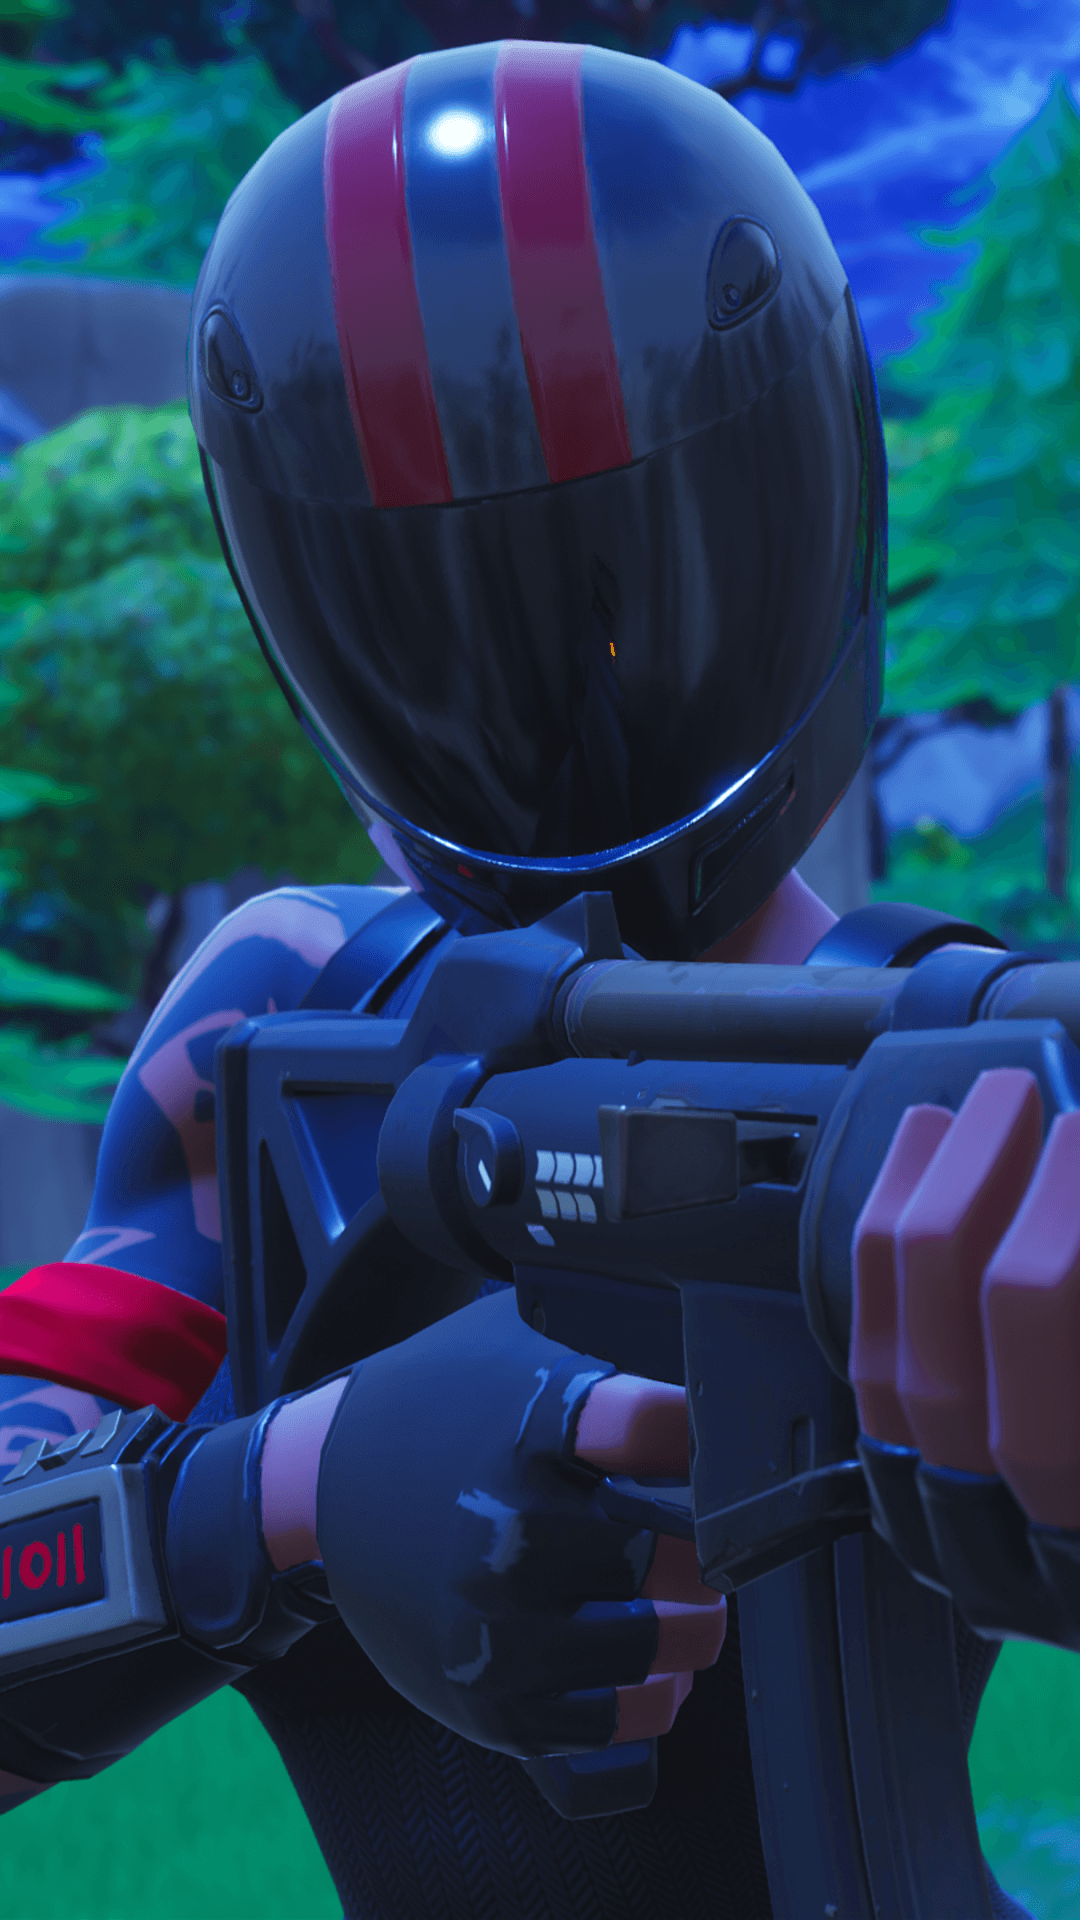 Video Game/Fortnite (1080x1920) Wallpaper ID: 742735 - Mobile Abyss